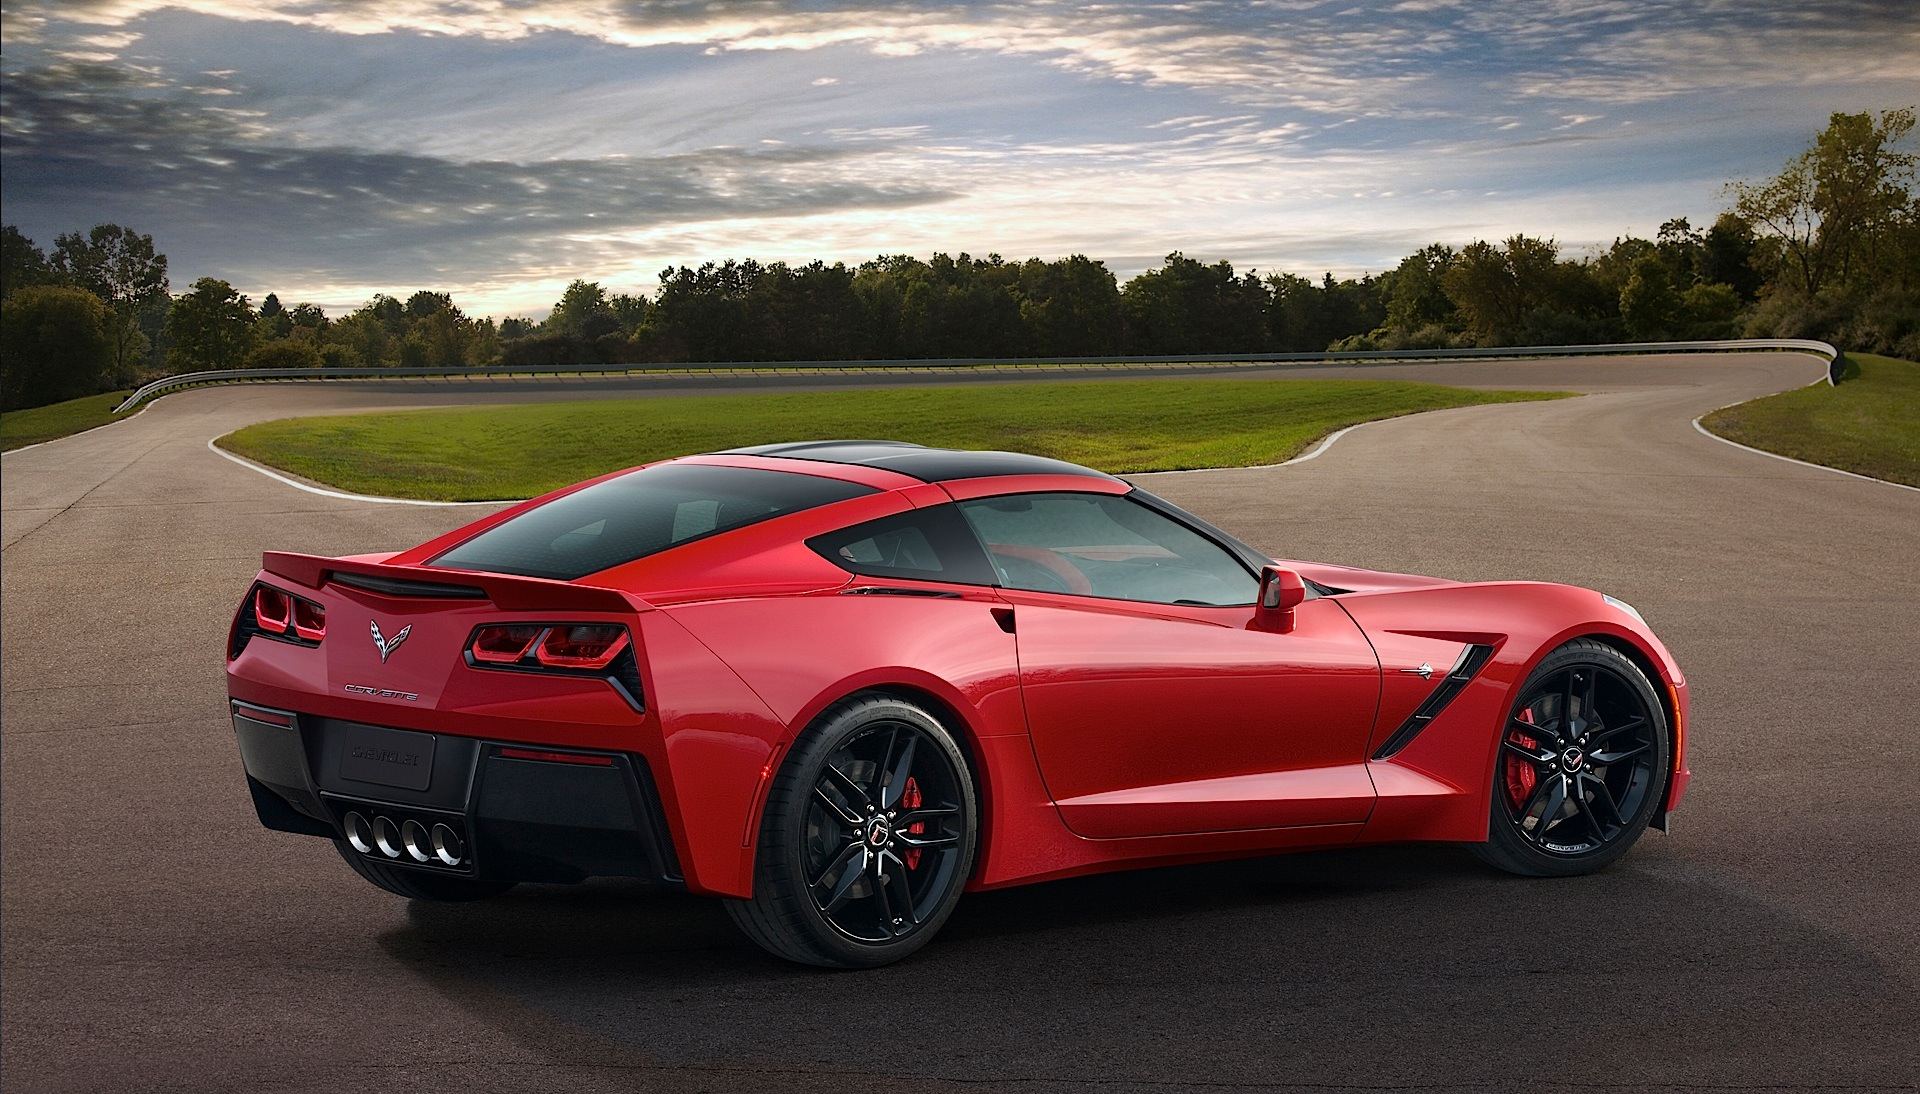 Chevrolet Corvette Stingray C7 Specs 2013 2014 2015